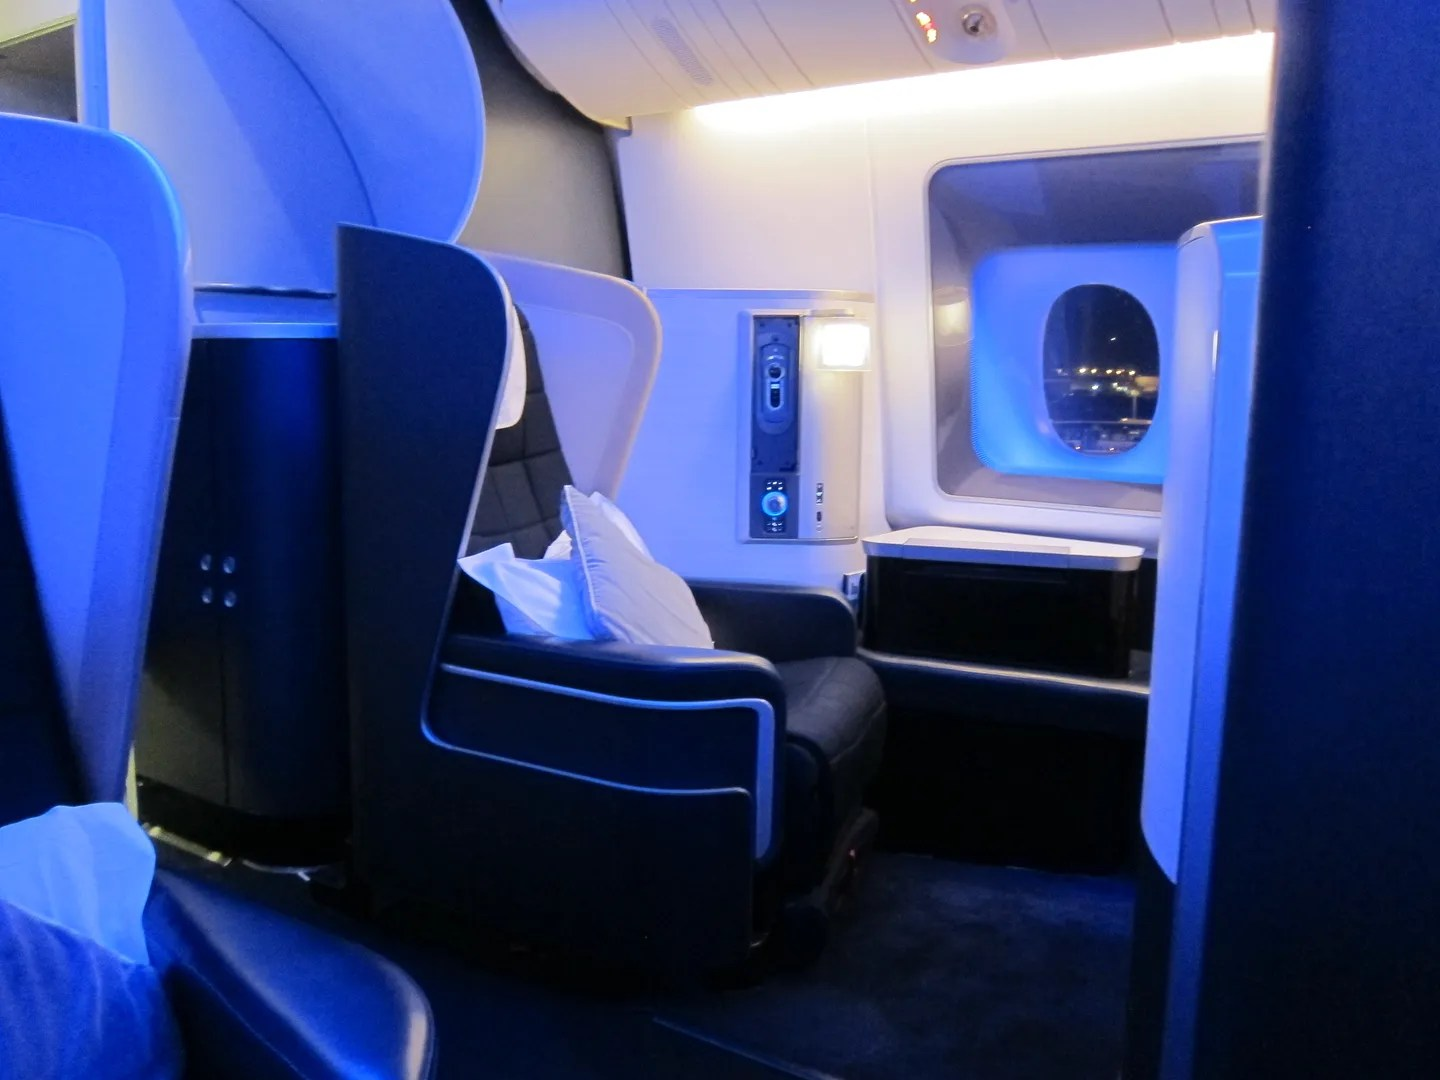 Get Up to 10 Premium Award Seats on the Same Transatlantic ...